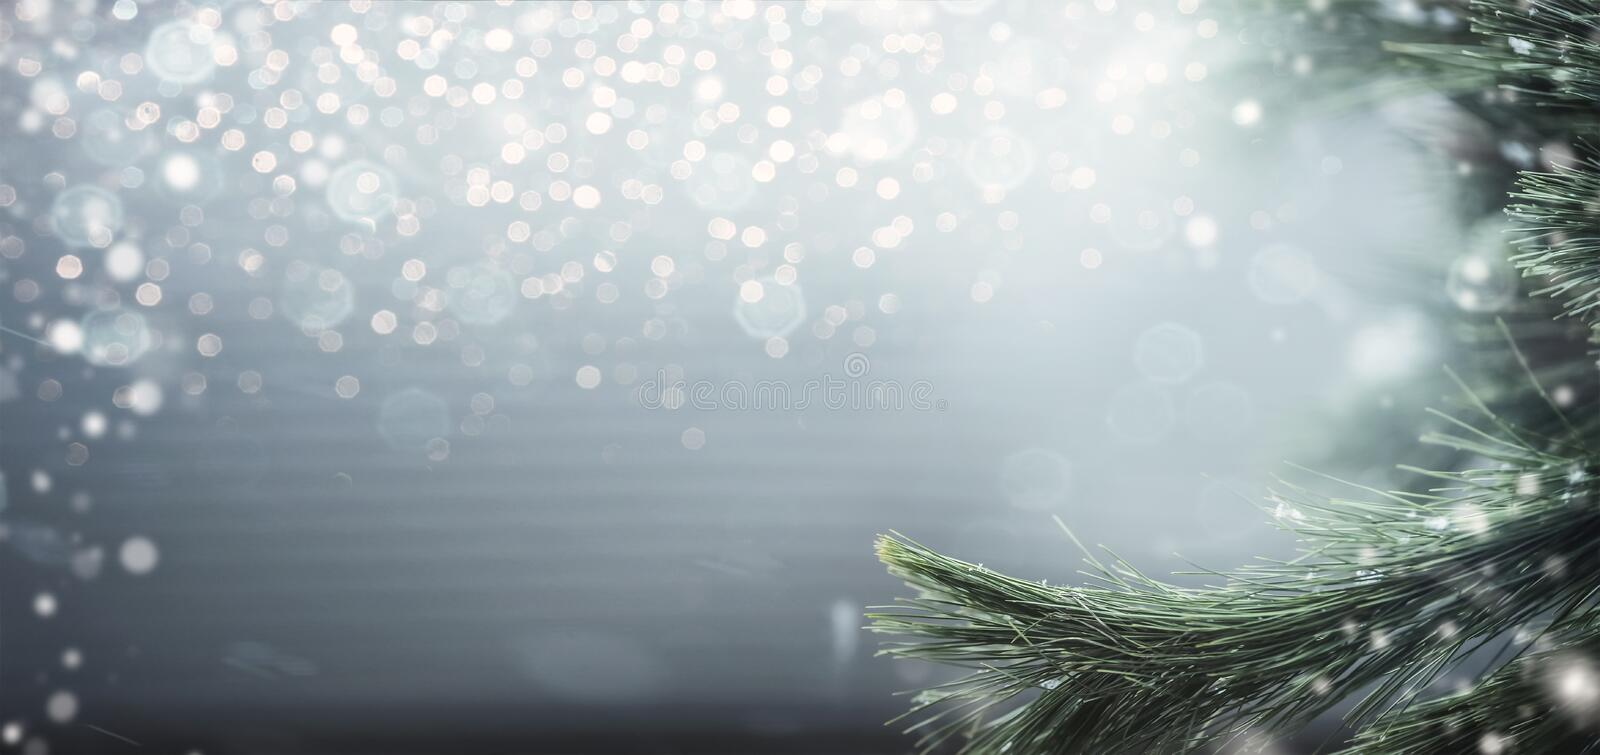 Wonderful winter background with fir branches, snow and bokeh lighting. Winter holidays and Christmas stock images